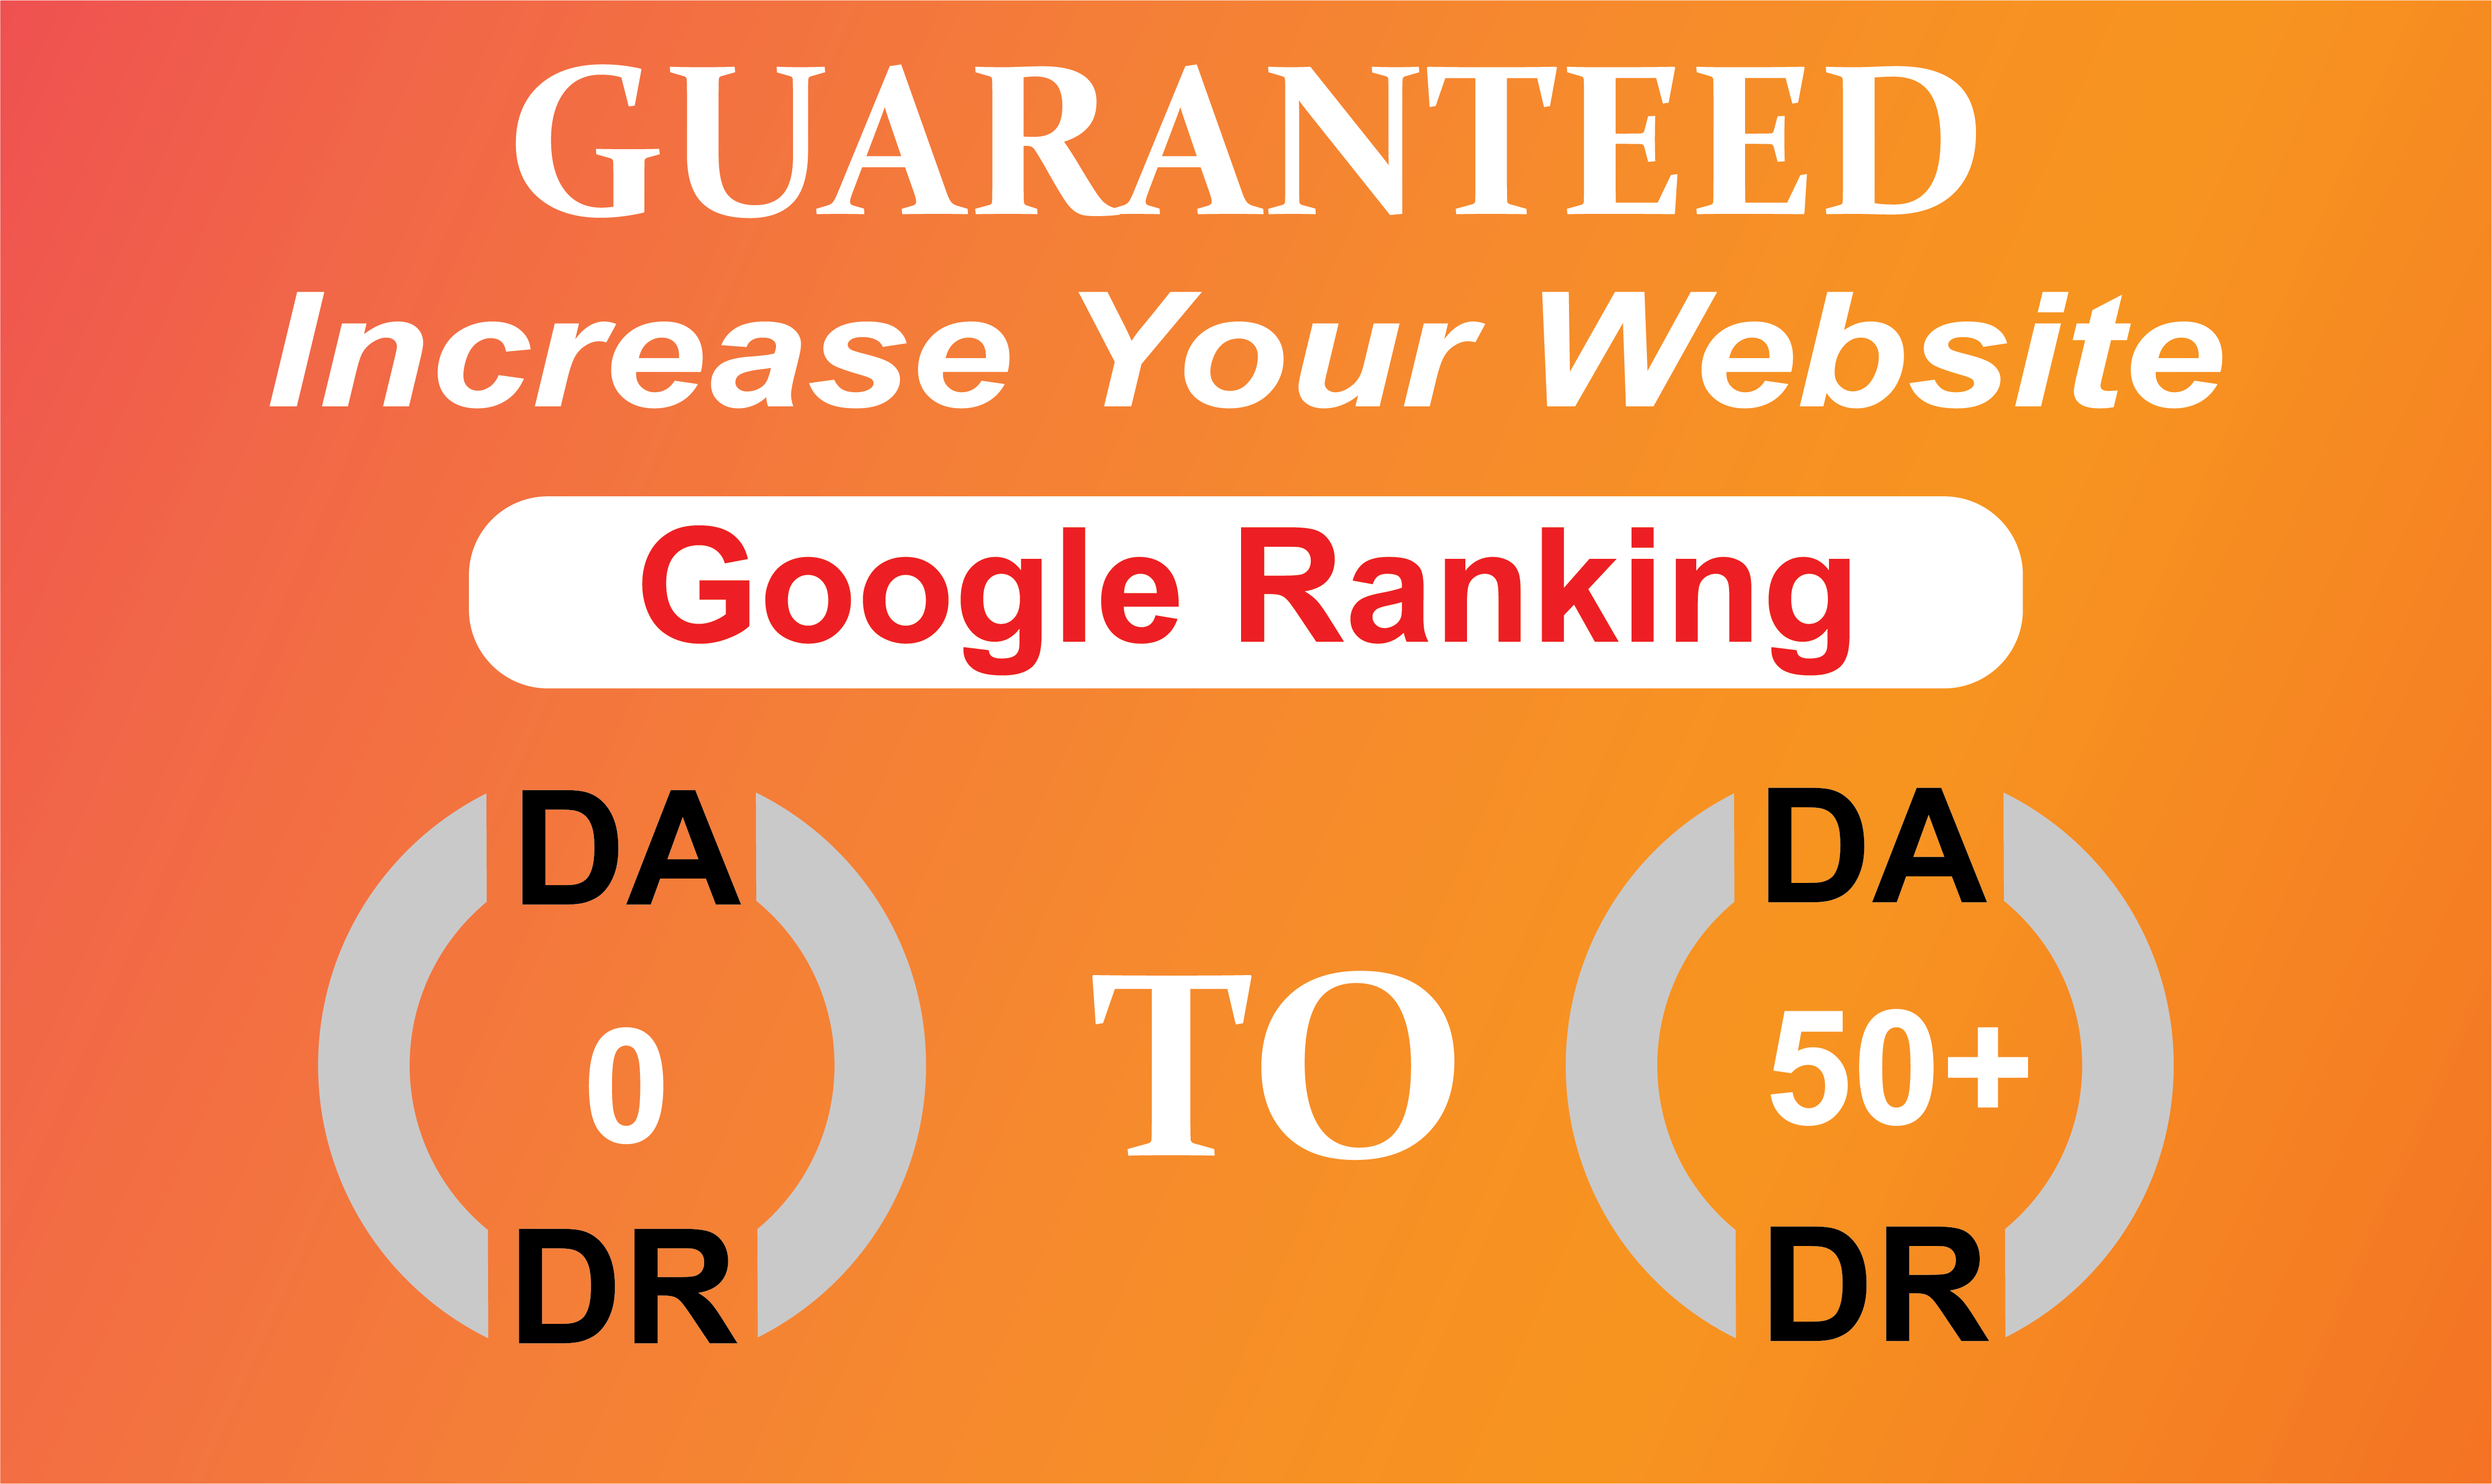 Increase Your Website Ahfrefs Domain Authority DA50+ and Domain Ratings DR50+ Guaranteed